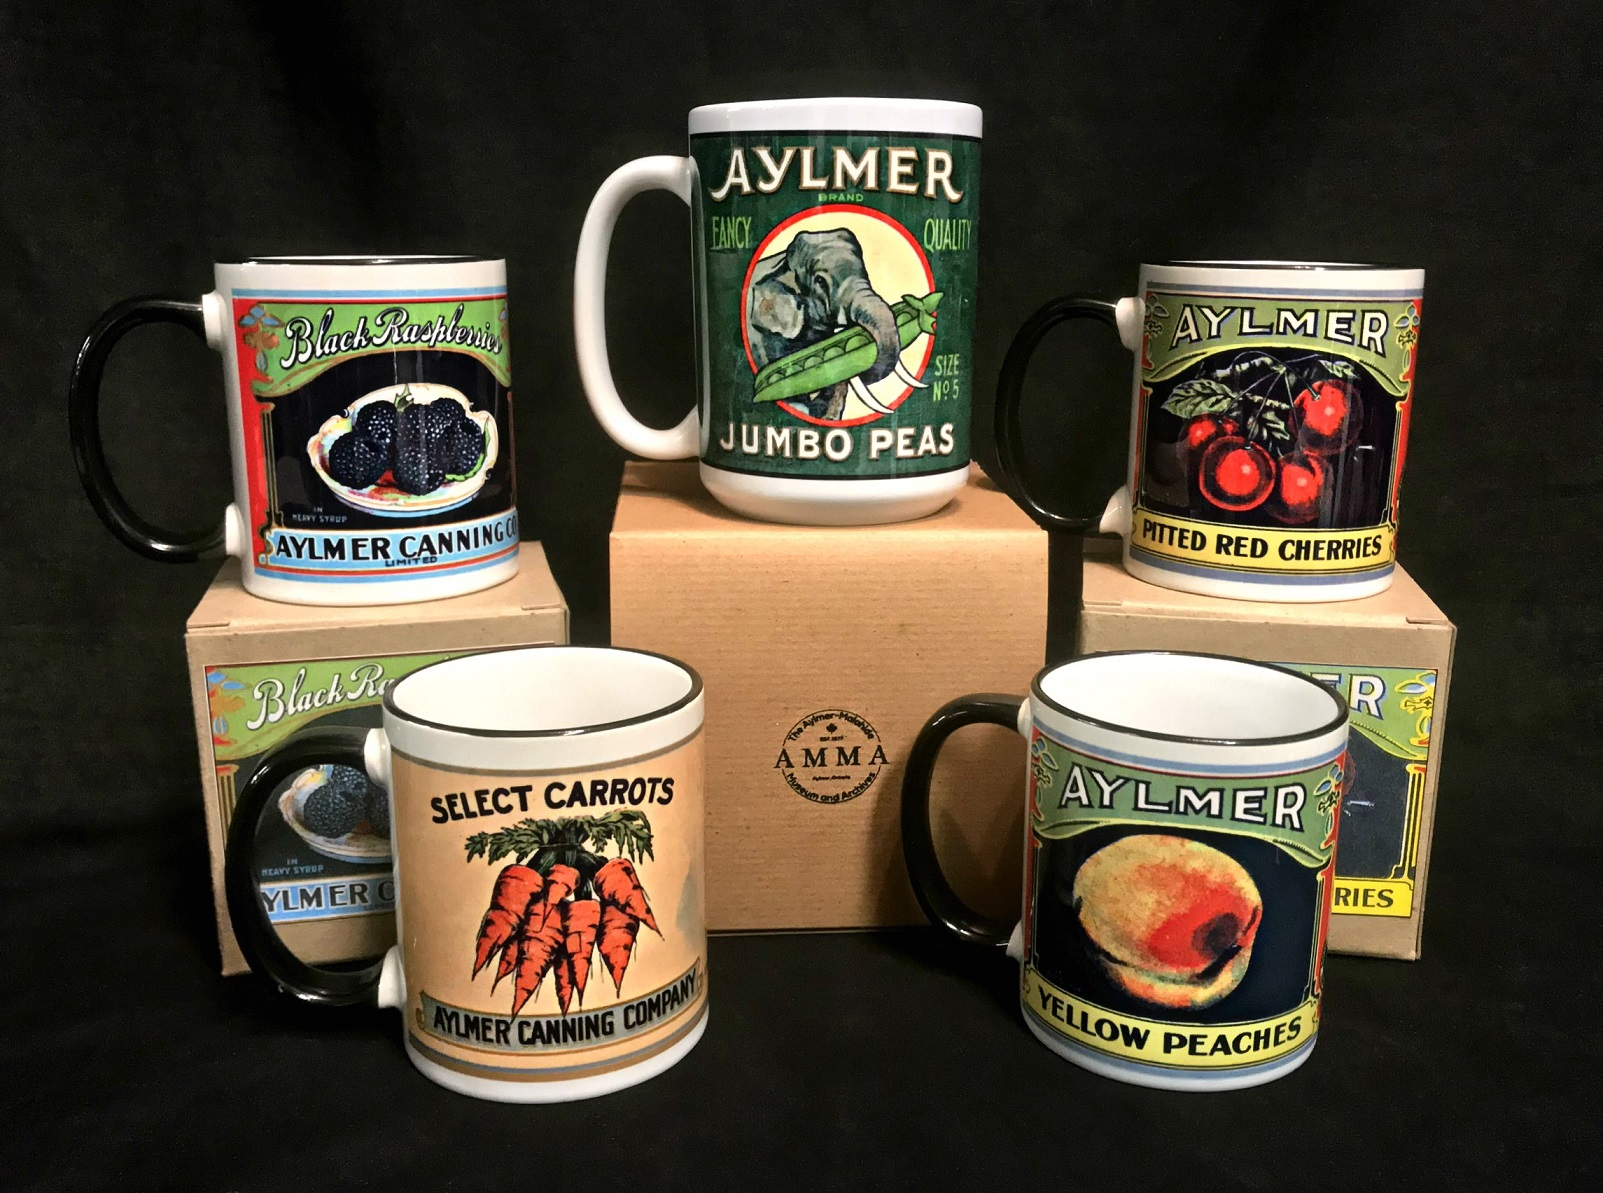 Image of all five variations of the Aylmer Canning Company mugs for sale at the Aylmer Museum.